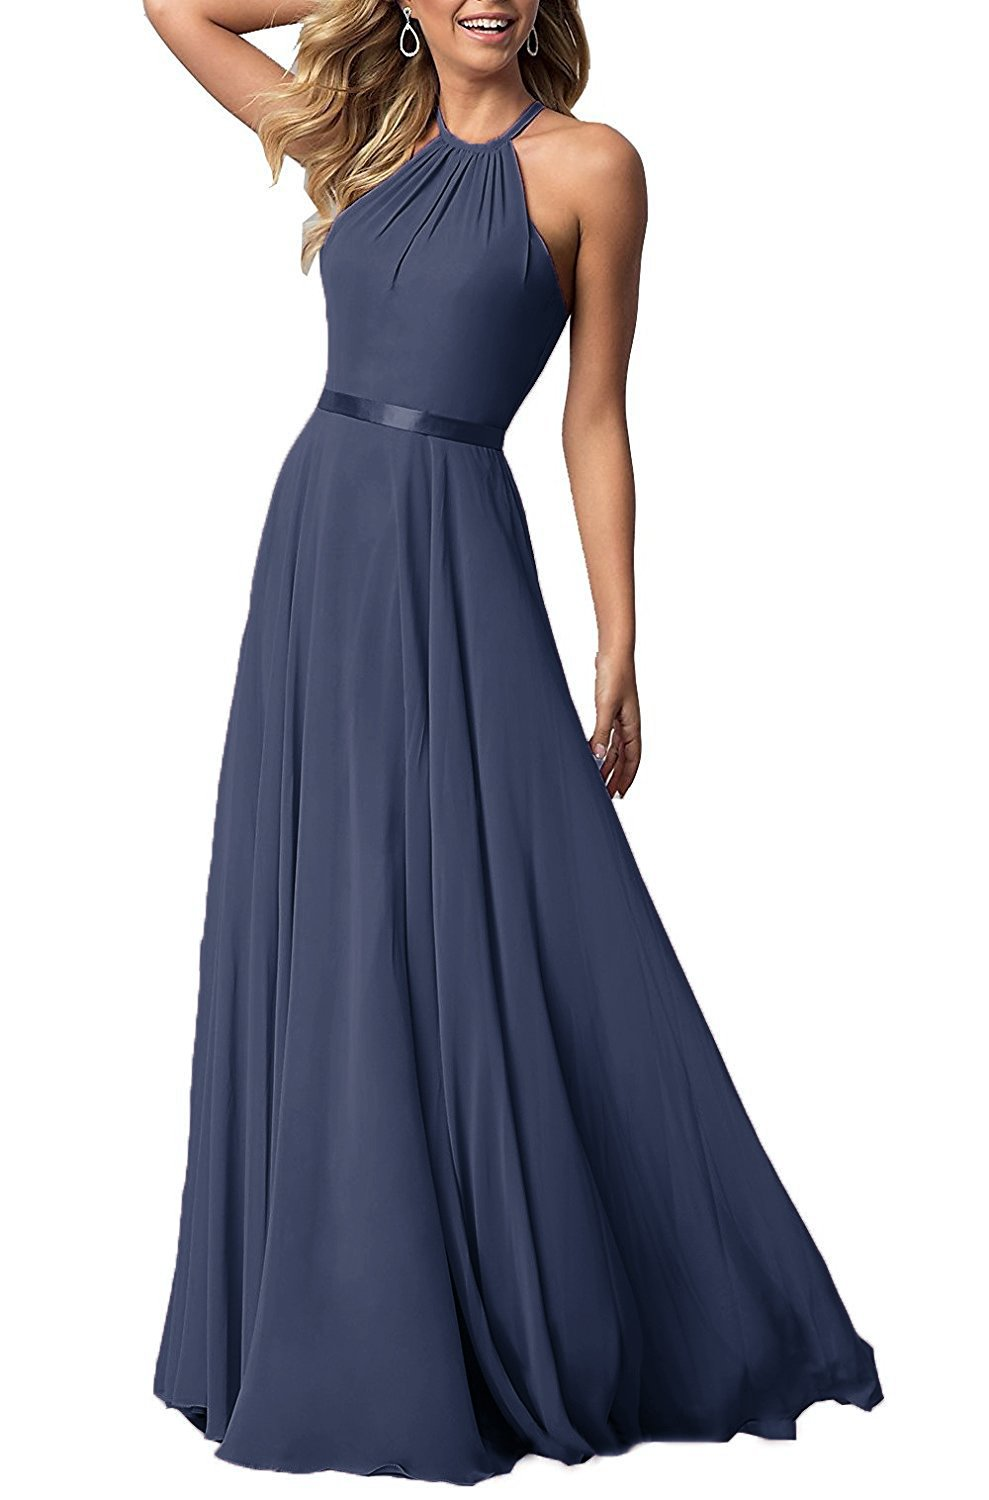 Now and Forever Long Sexy Sleeveless Wedding Party Dress Formal Flowy Evening Prom Gown (Darkslateblue,2)